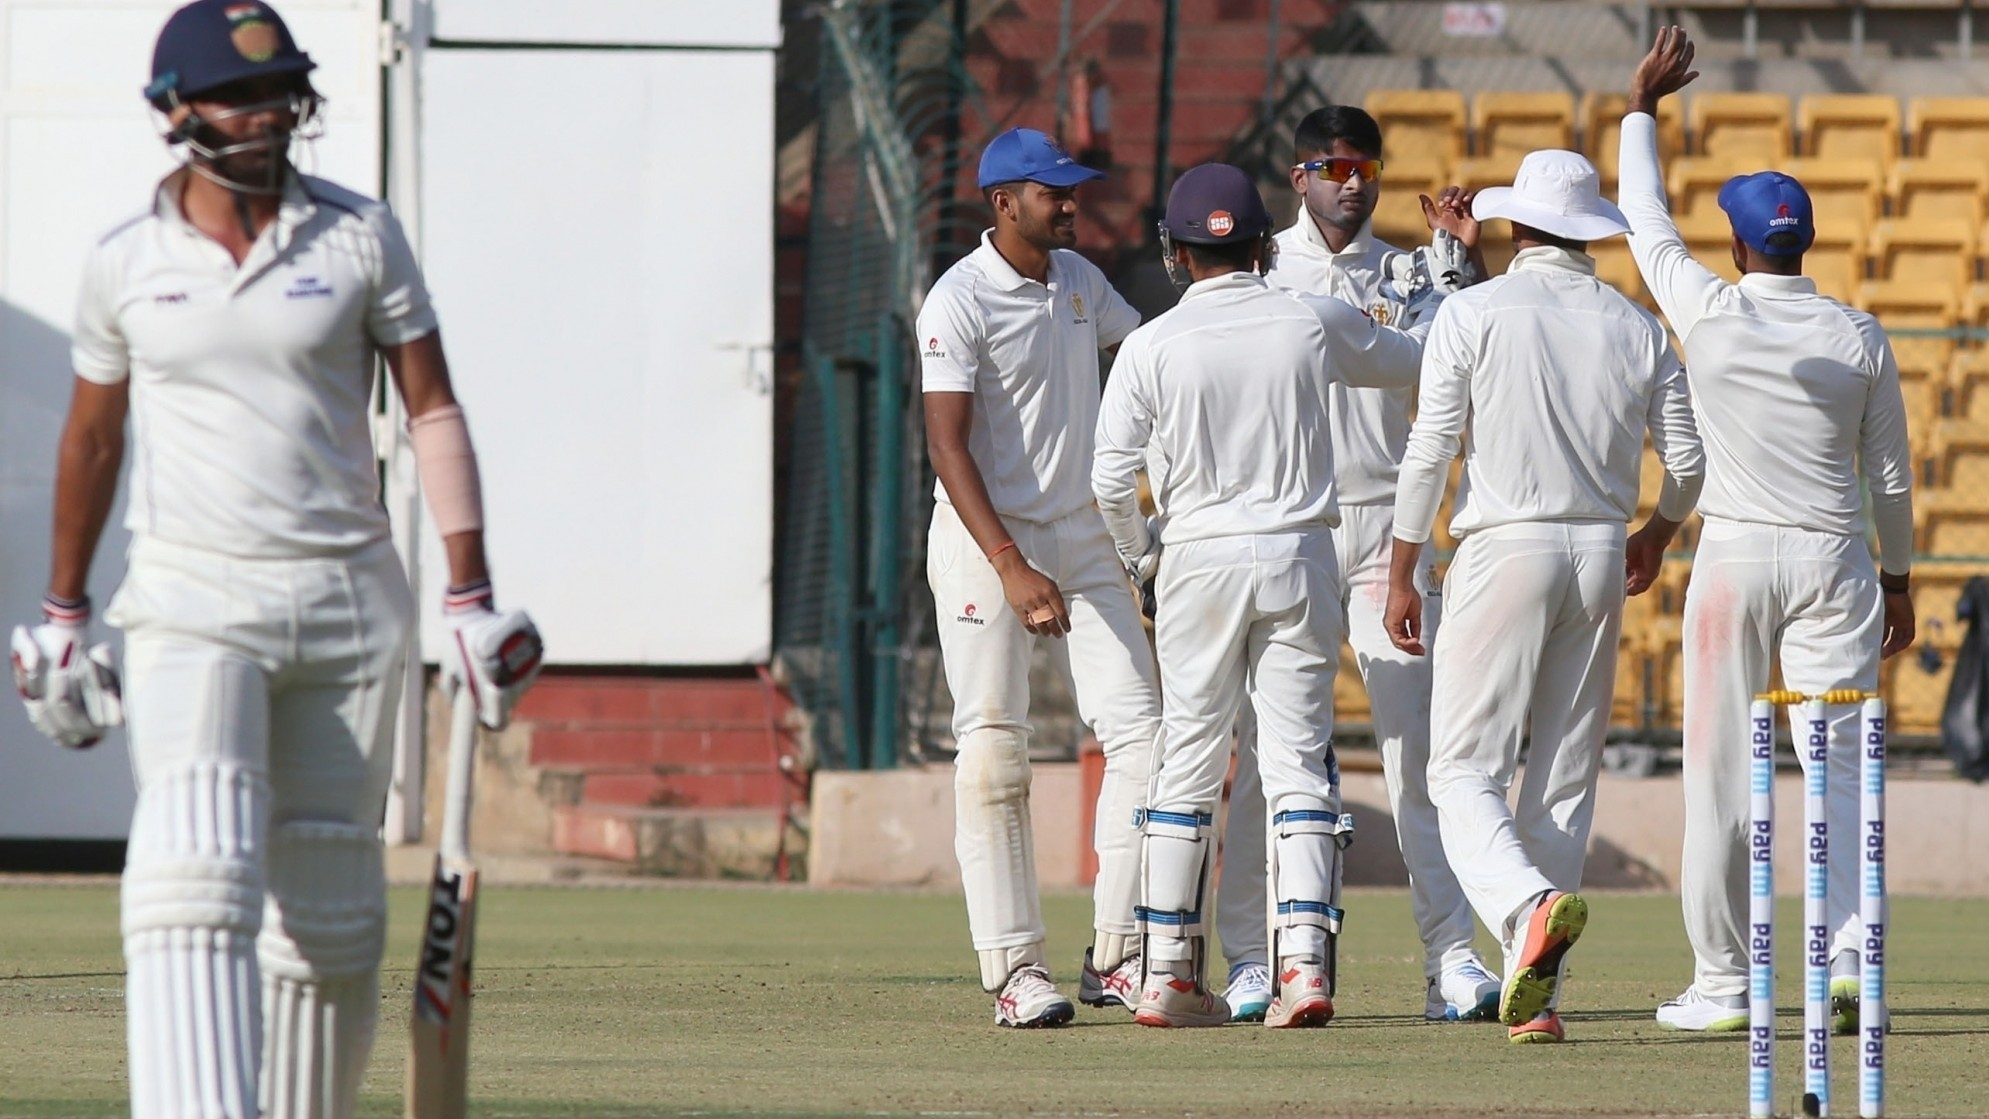 Ranji Trophy 2020: DRS set to be implemented in semis and final with limited tools